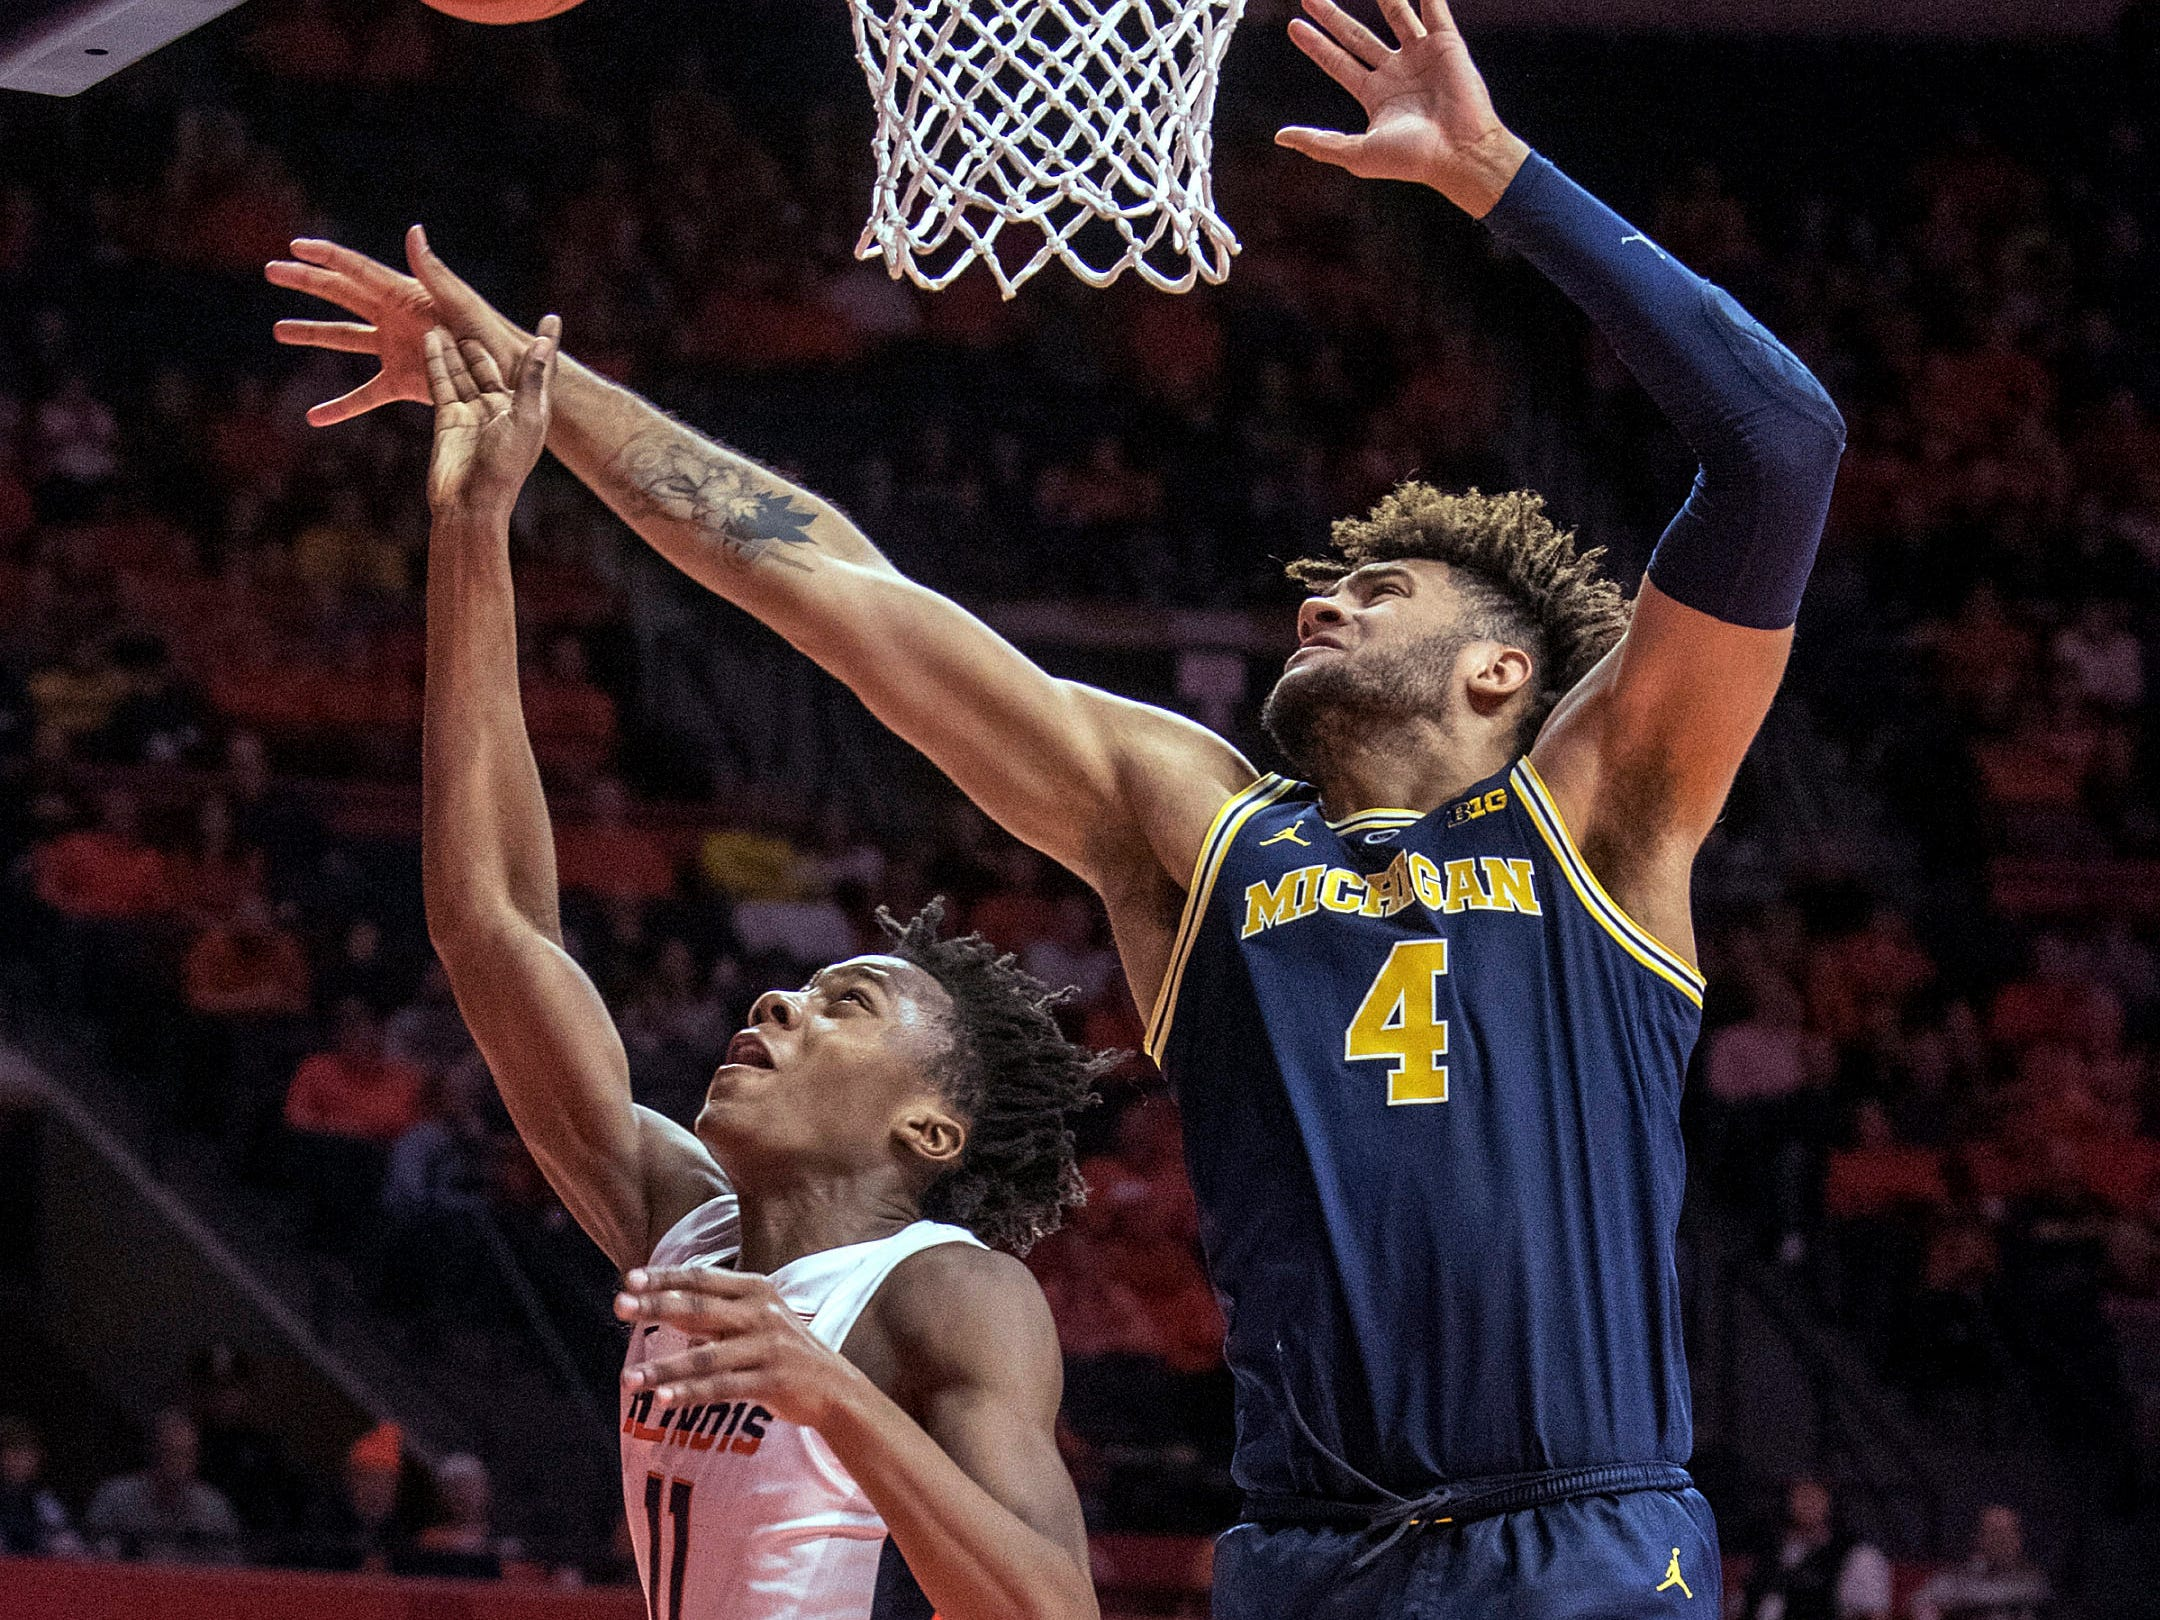 Illinois guard Ayo Dosunmu (11) shoots next to Michigan forward Isaiah Livers (4) during the first half of an NCAA college basketball game in Champaign, Ill., Wednesday, Jan. 10, 2019.